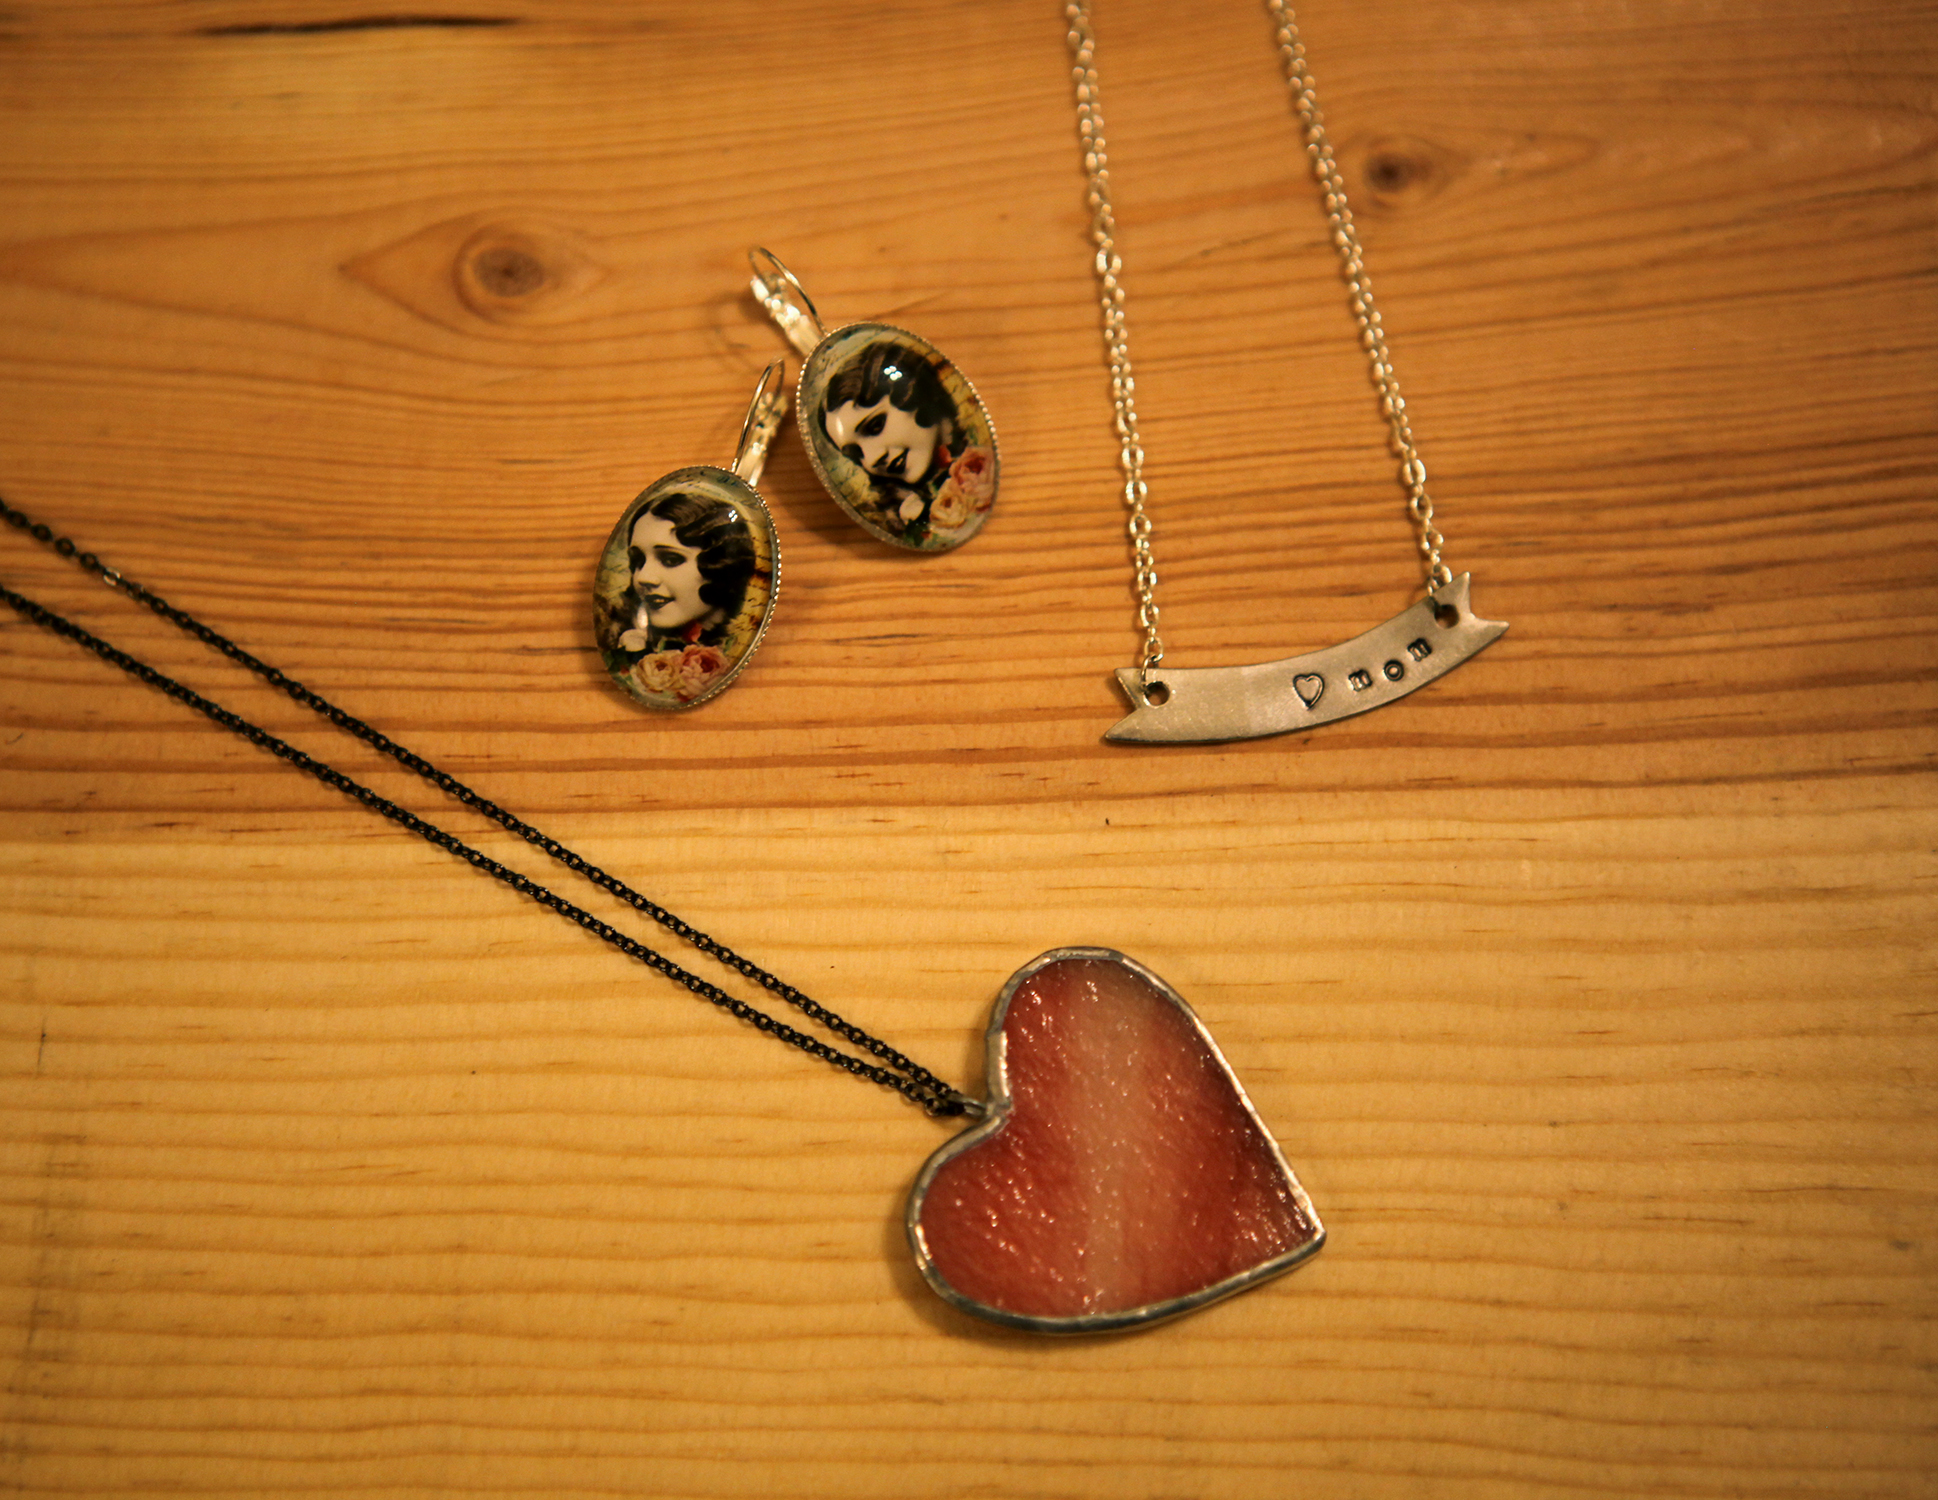 """Glass heart necklace made by Glass Action, $25.00. Silver """"mom"""" banner necklace by Dear Darlington, $24.00. Lady oval earrings by Trollaphant, $15.00."""